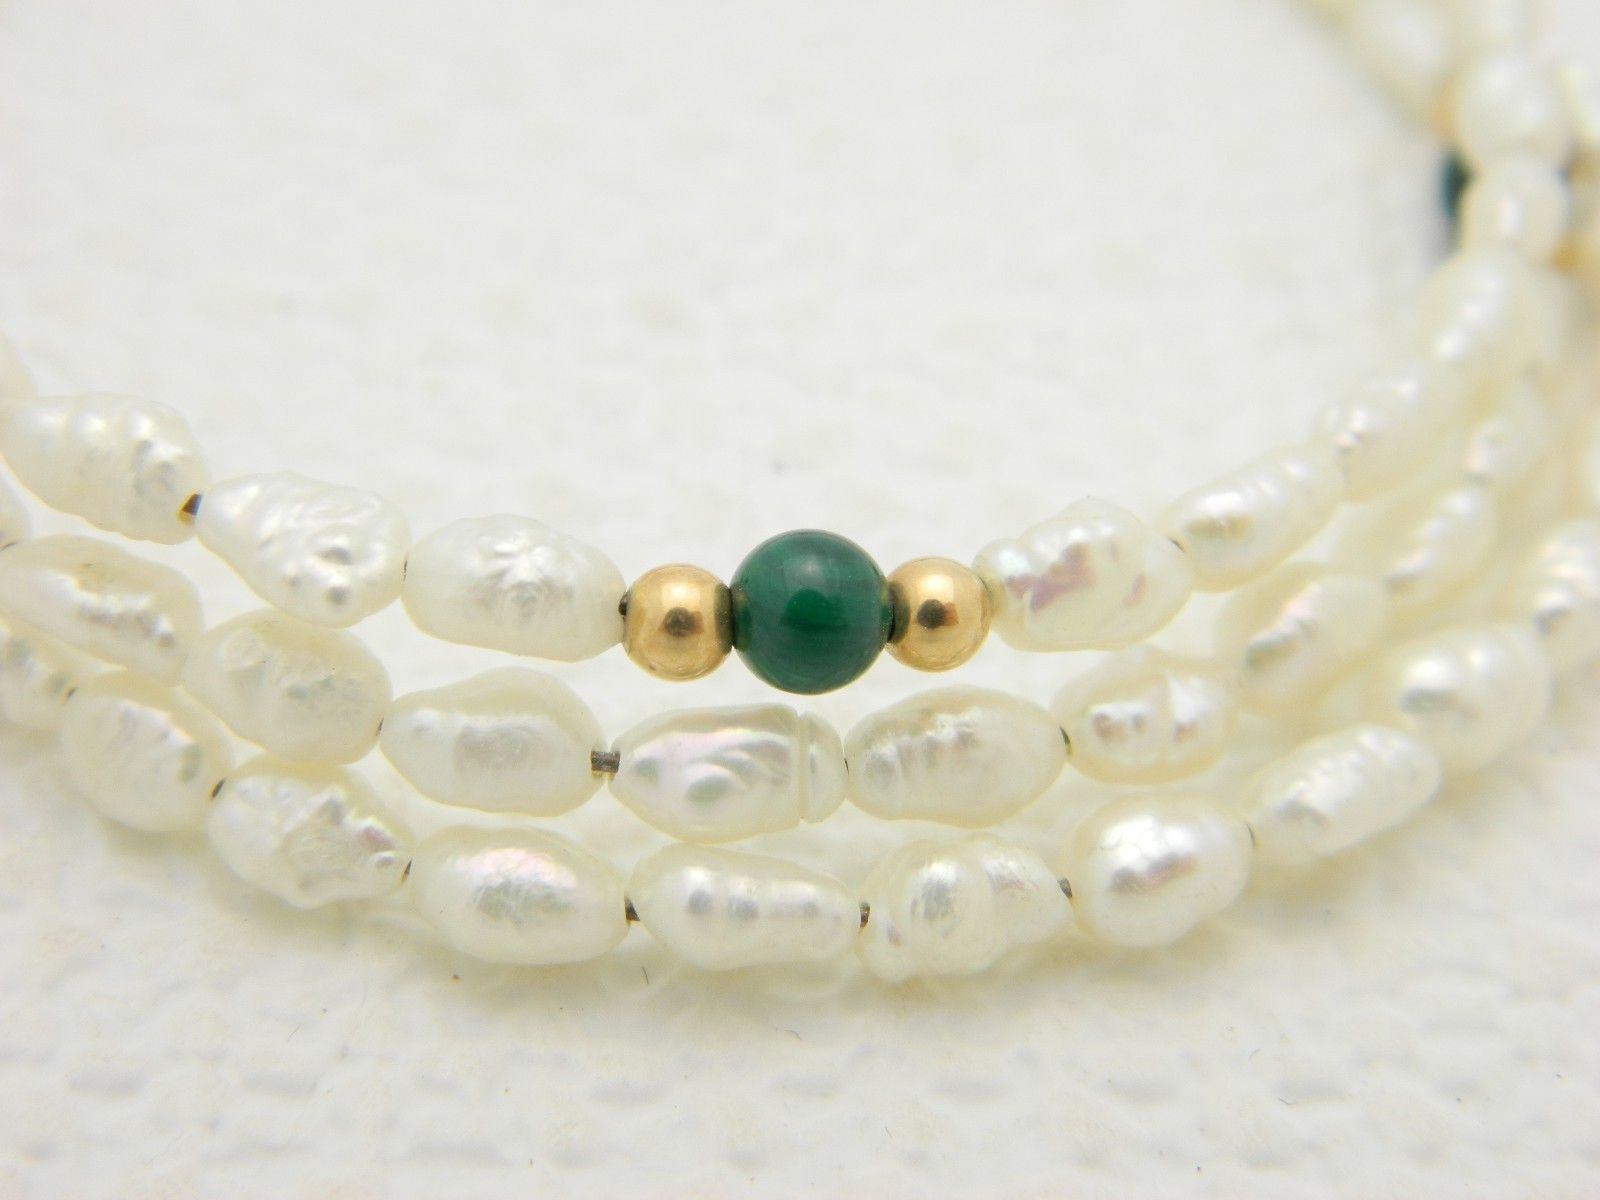 VTG FRESHWATER PEARLS & Malachite Gemstone Adjustable Expandable Bracelet image 3